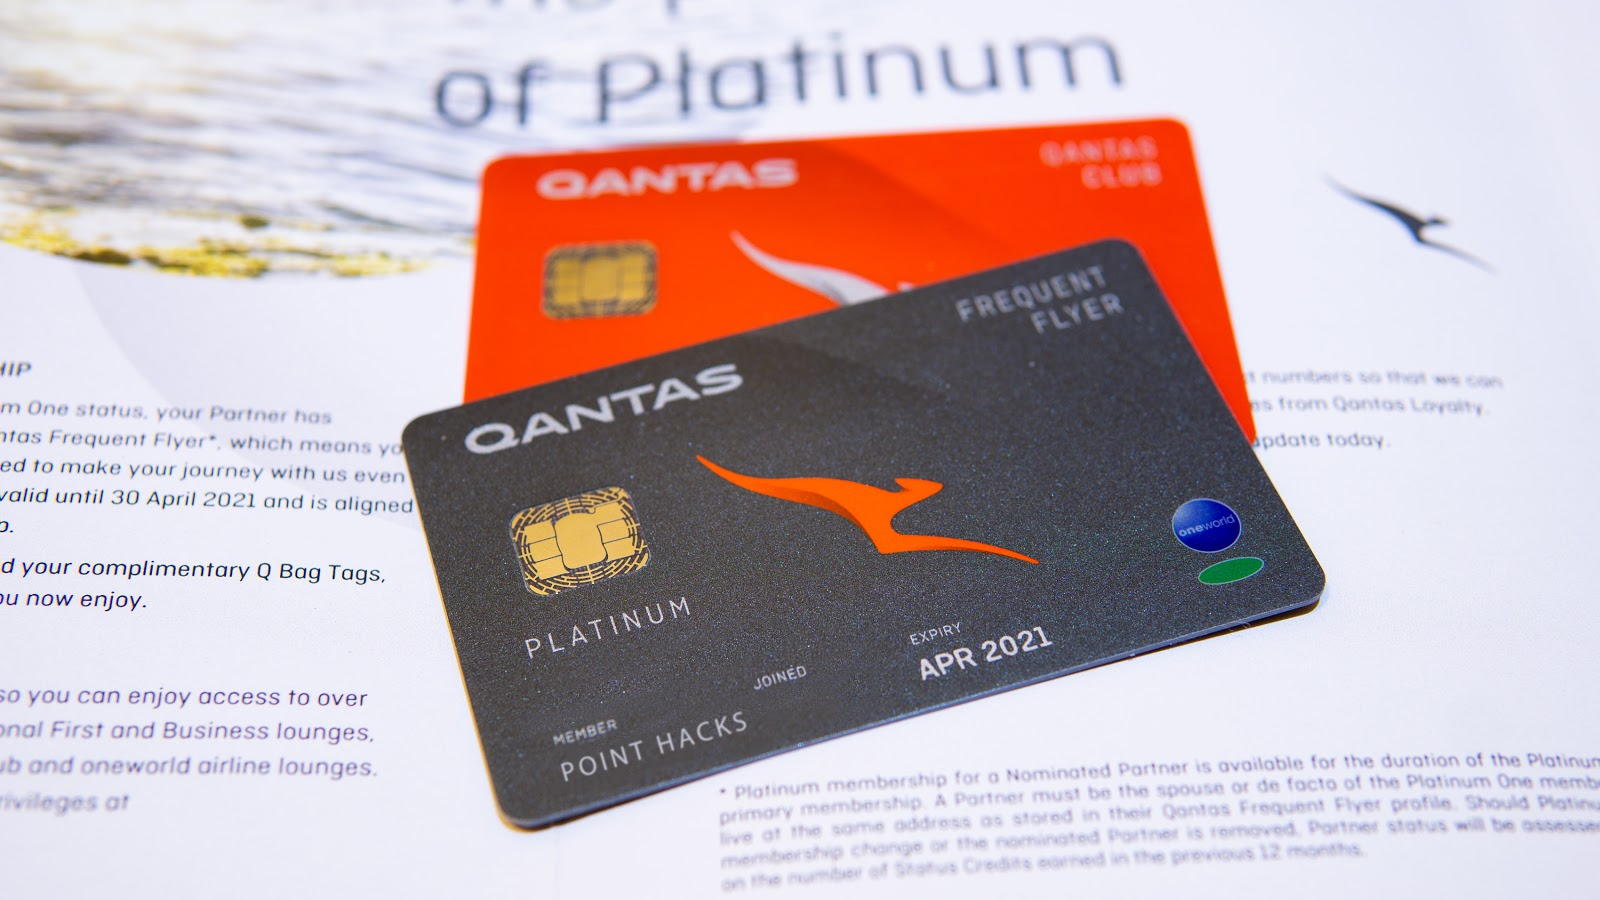 Qantas Platinum card